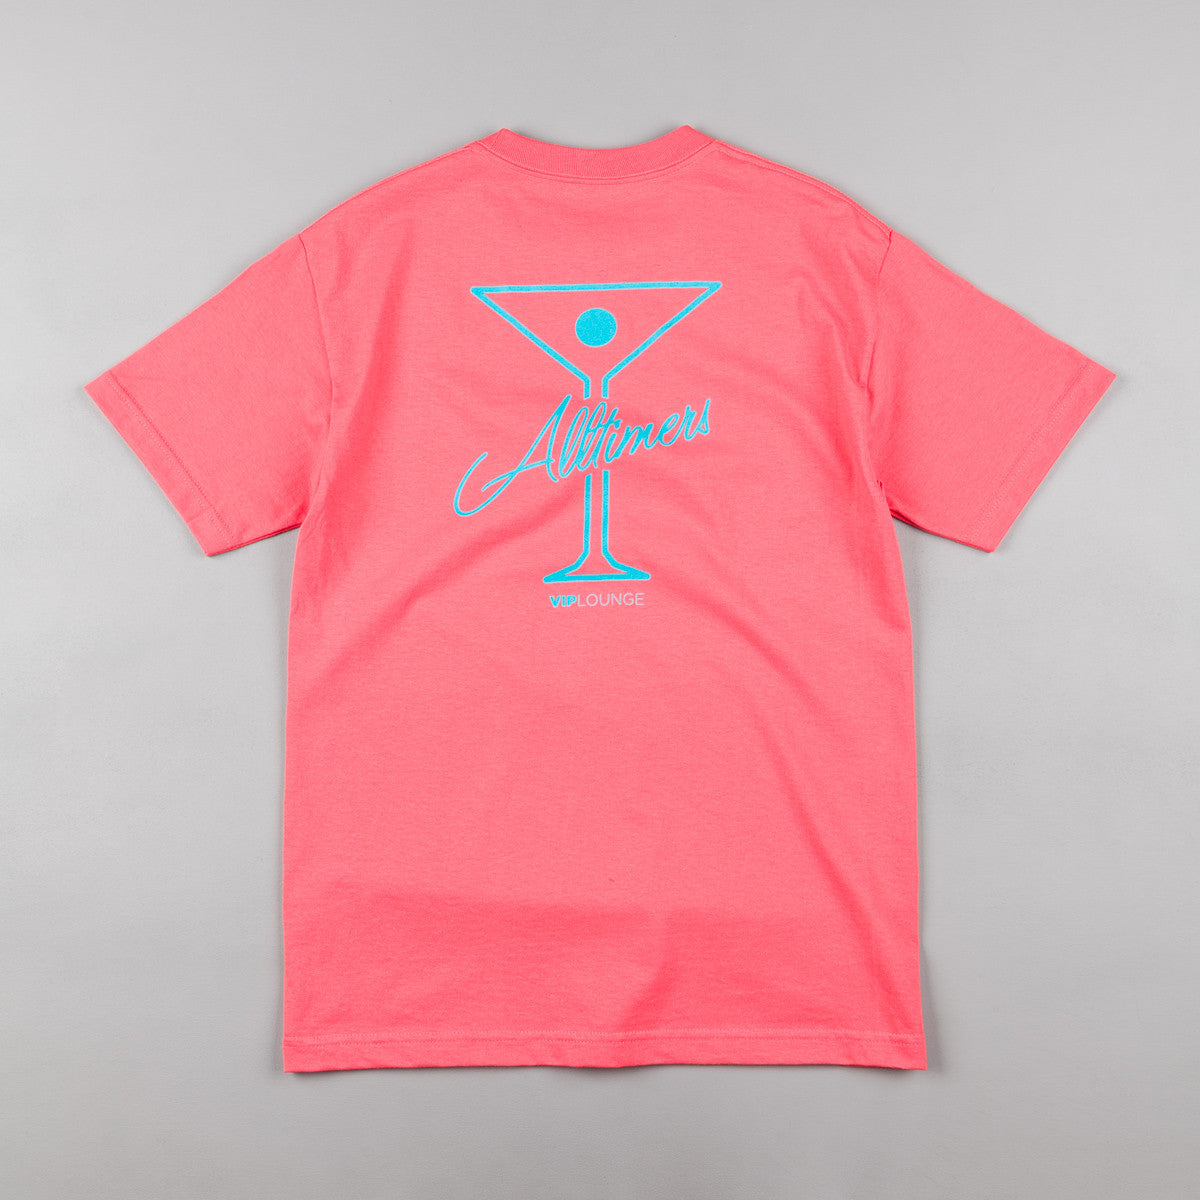 Alltimers Logo T-Shirt - Coral / Turquoise